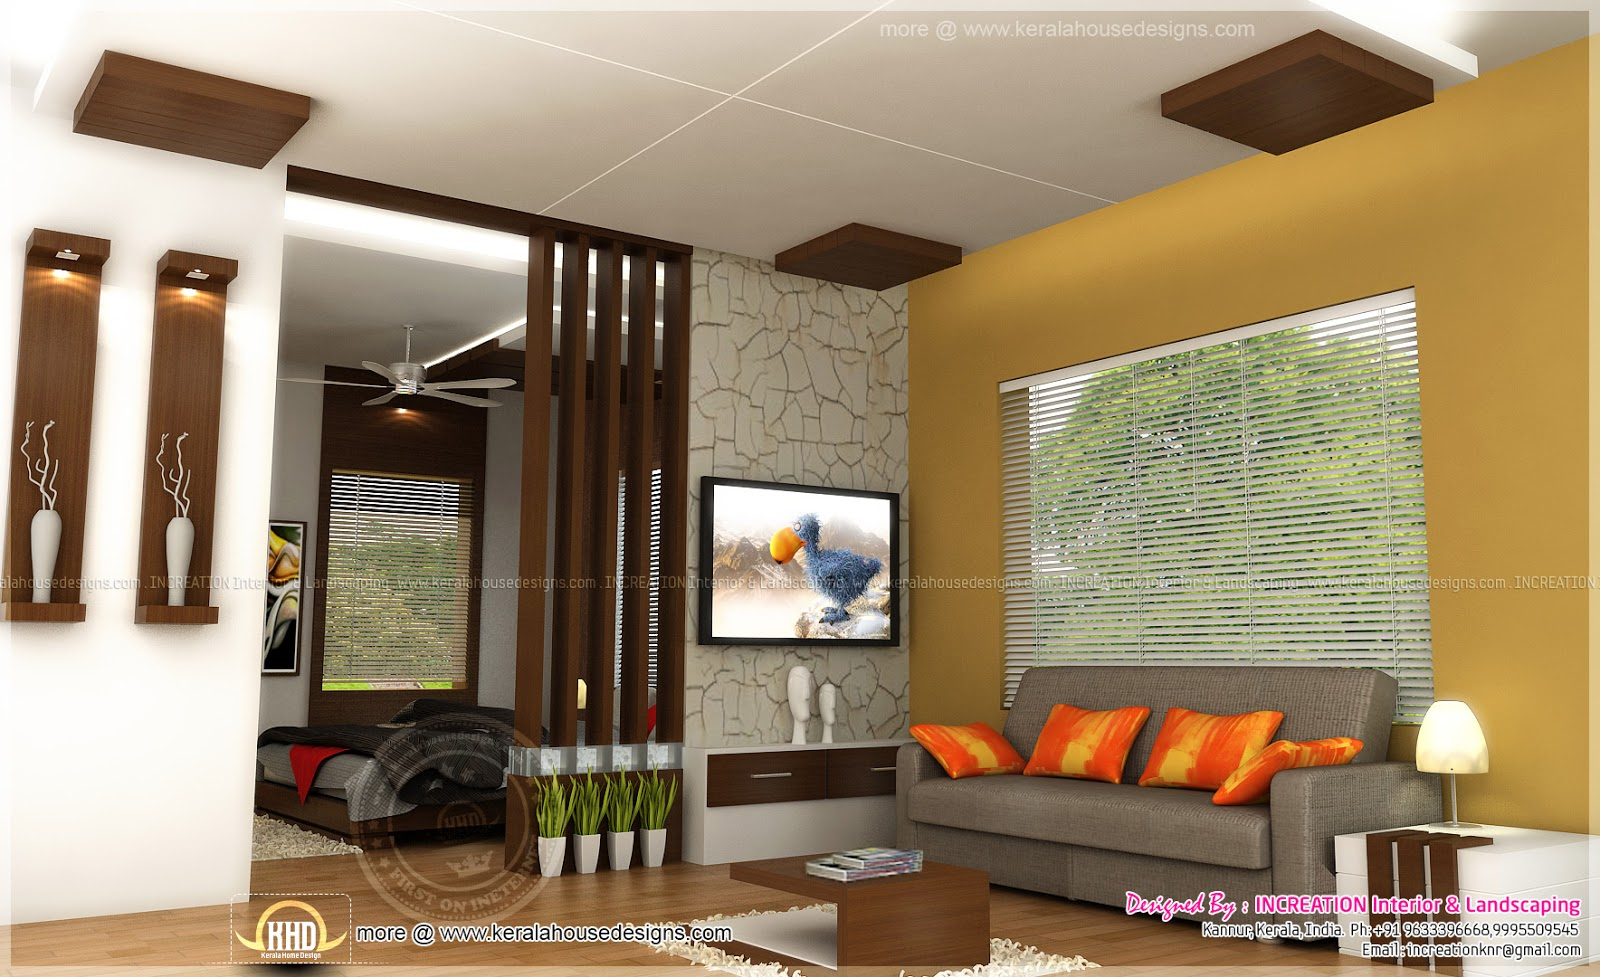 Interior designs from kannur kerala home kerala plans for House simple interior design